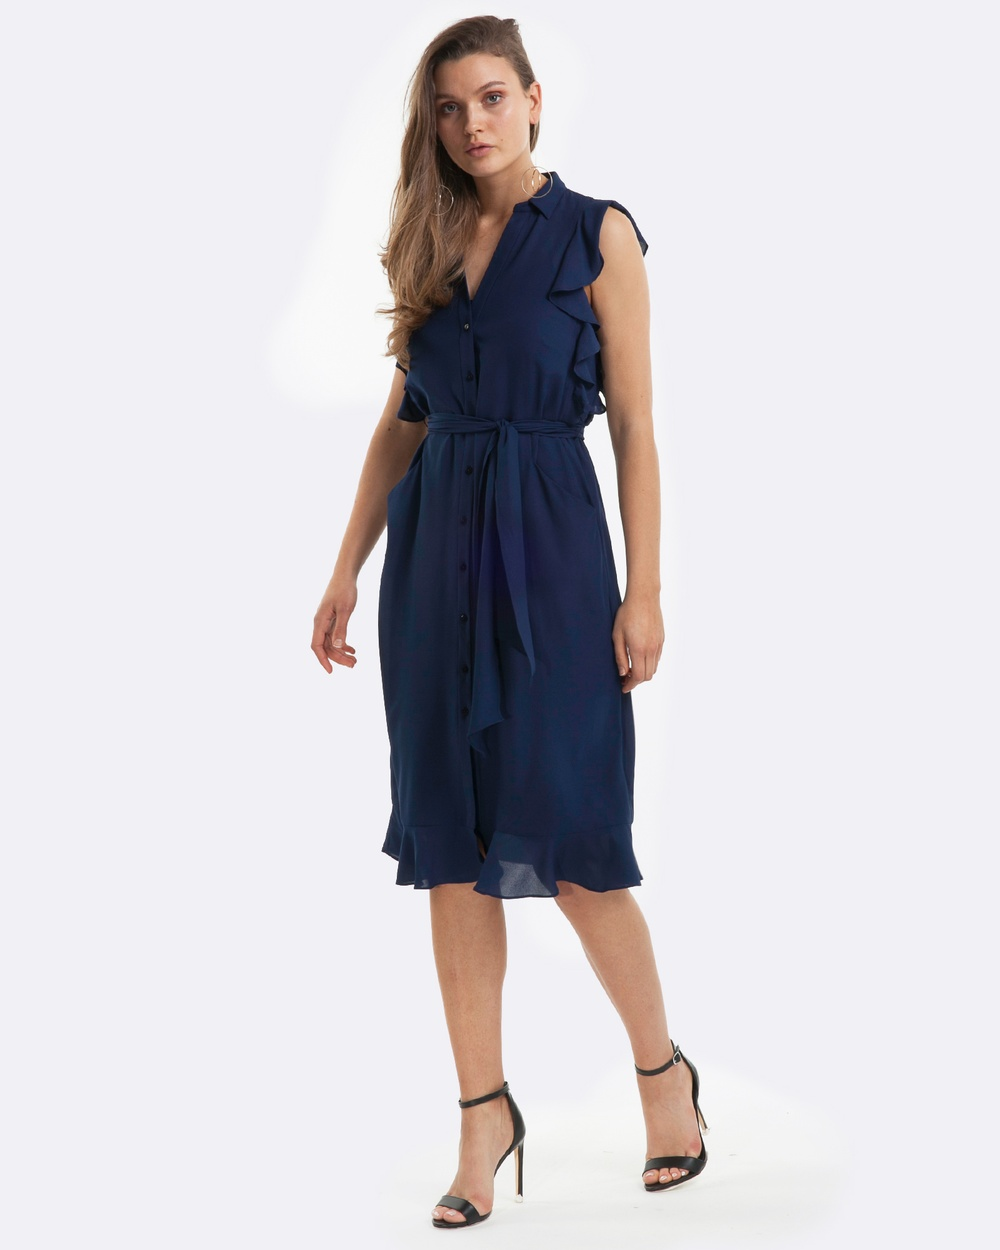 Amelius Femme Shirt Dress Dresses Navy Femme Shirt Dress